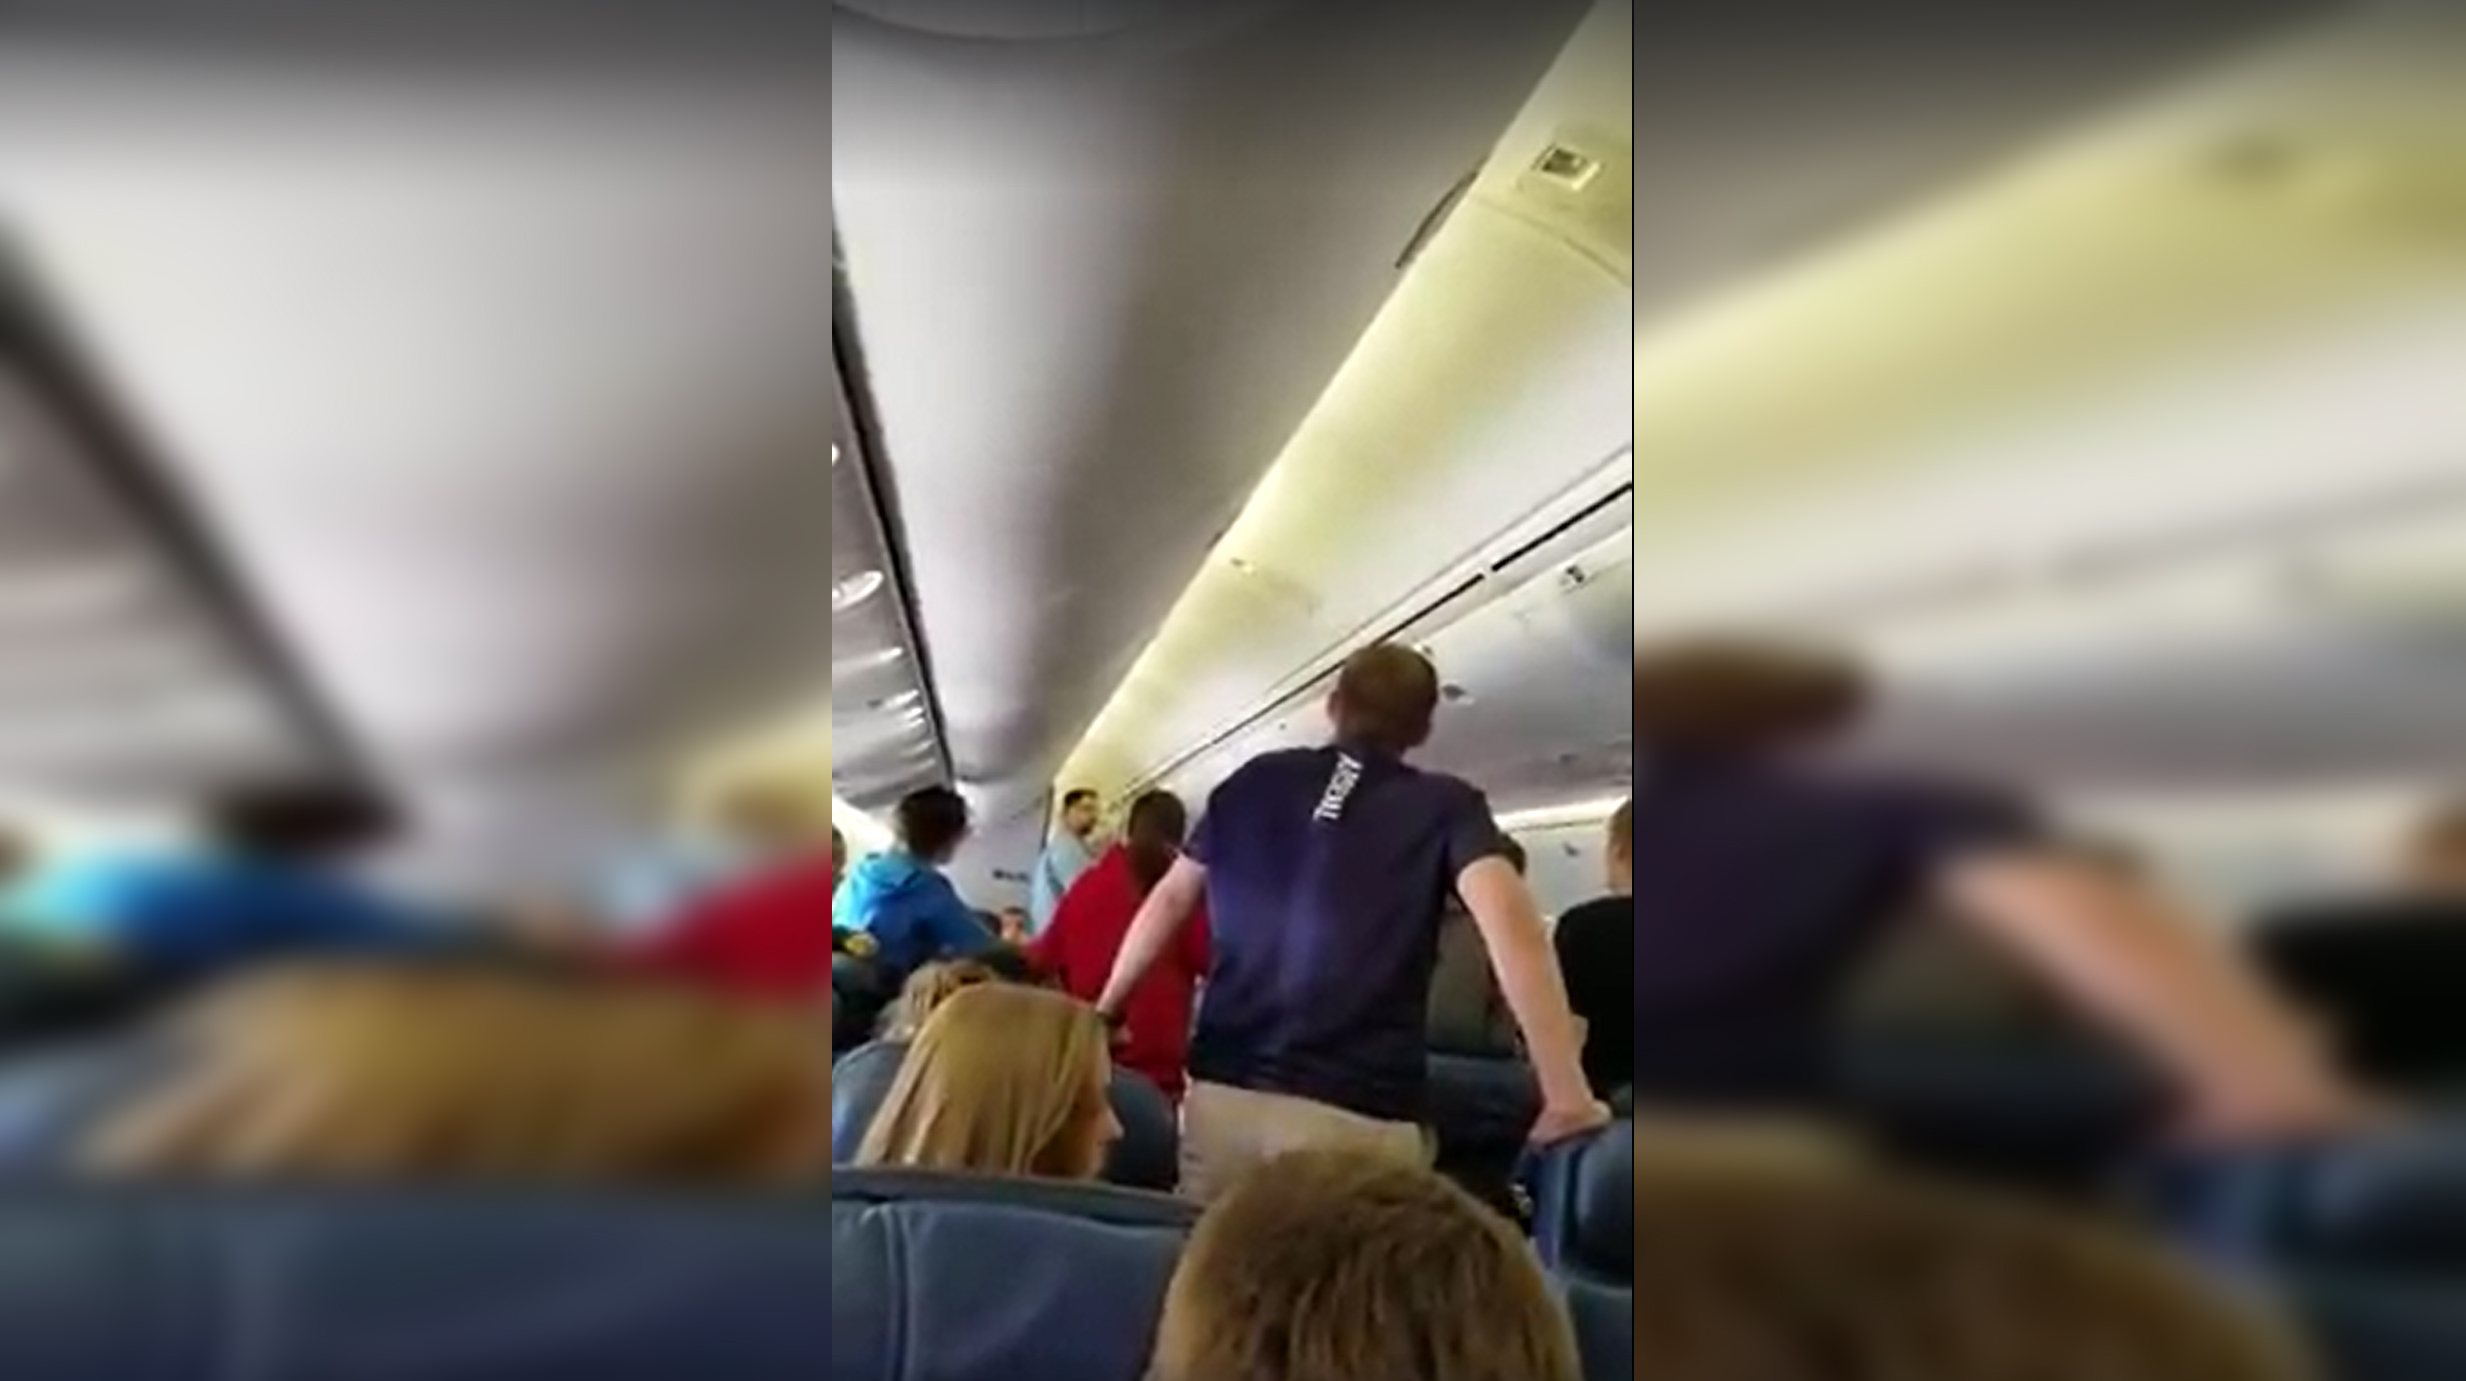 Soldier About To Exit Plane With Remains Of Fallen Hero, Student Passengers Stand In Impromptu Song